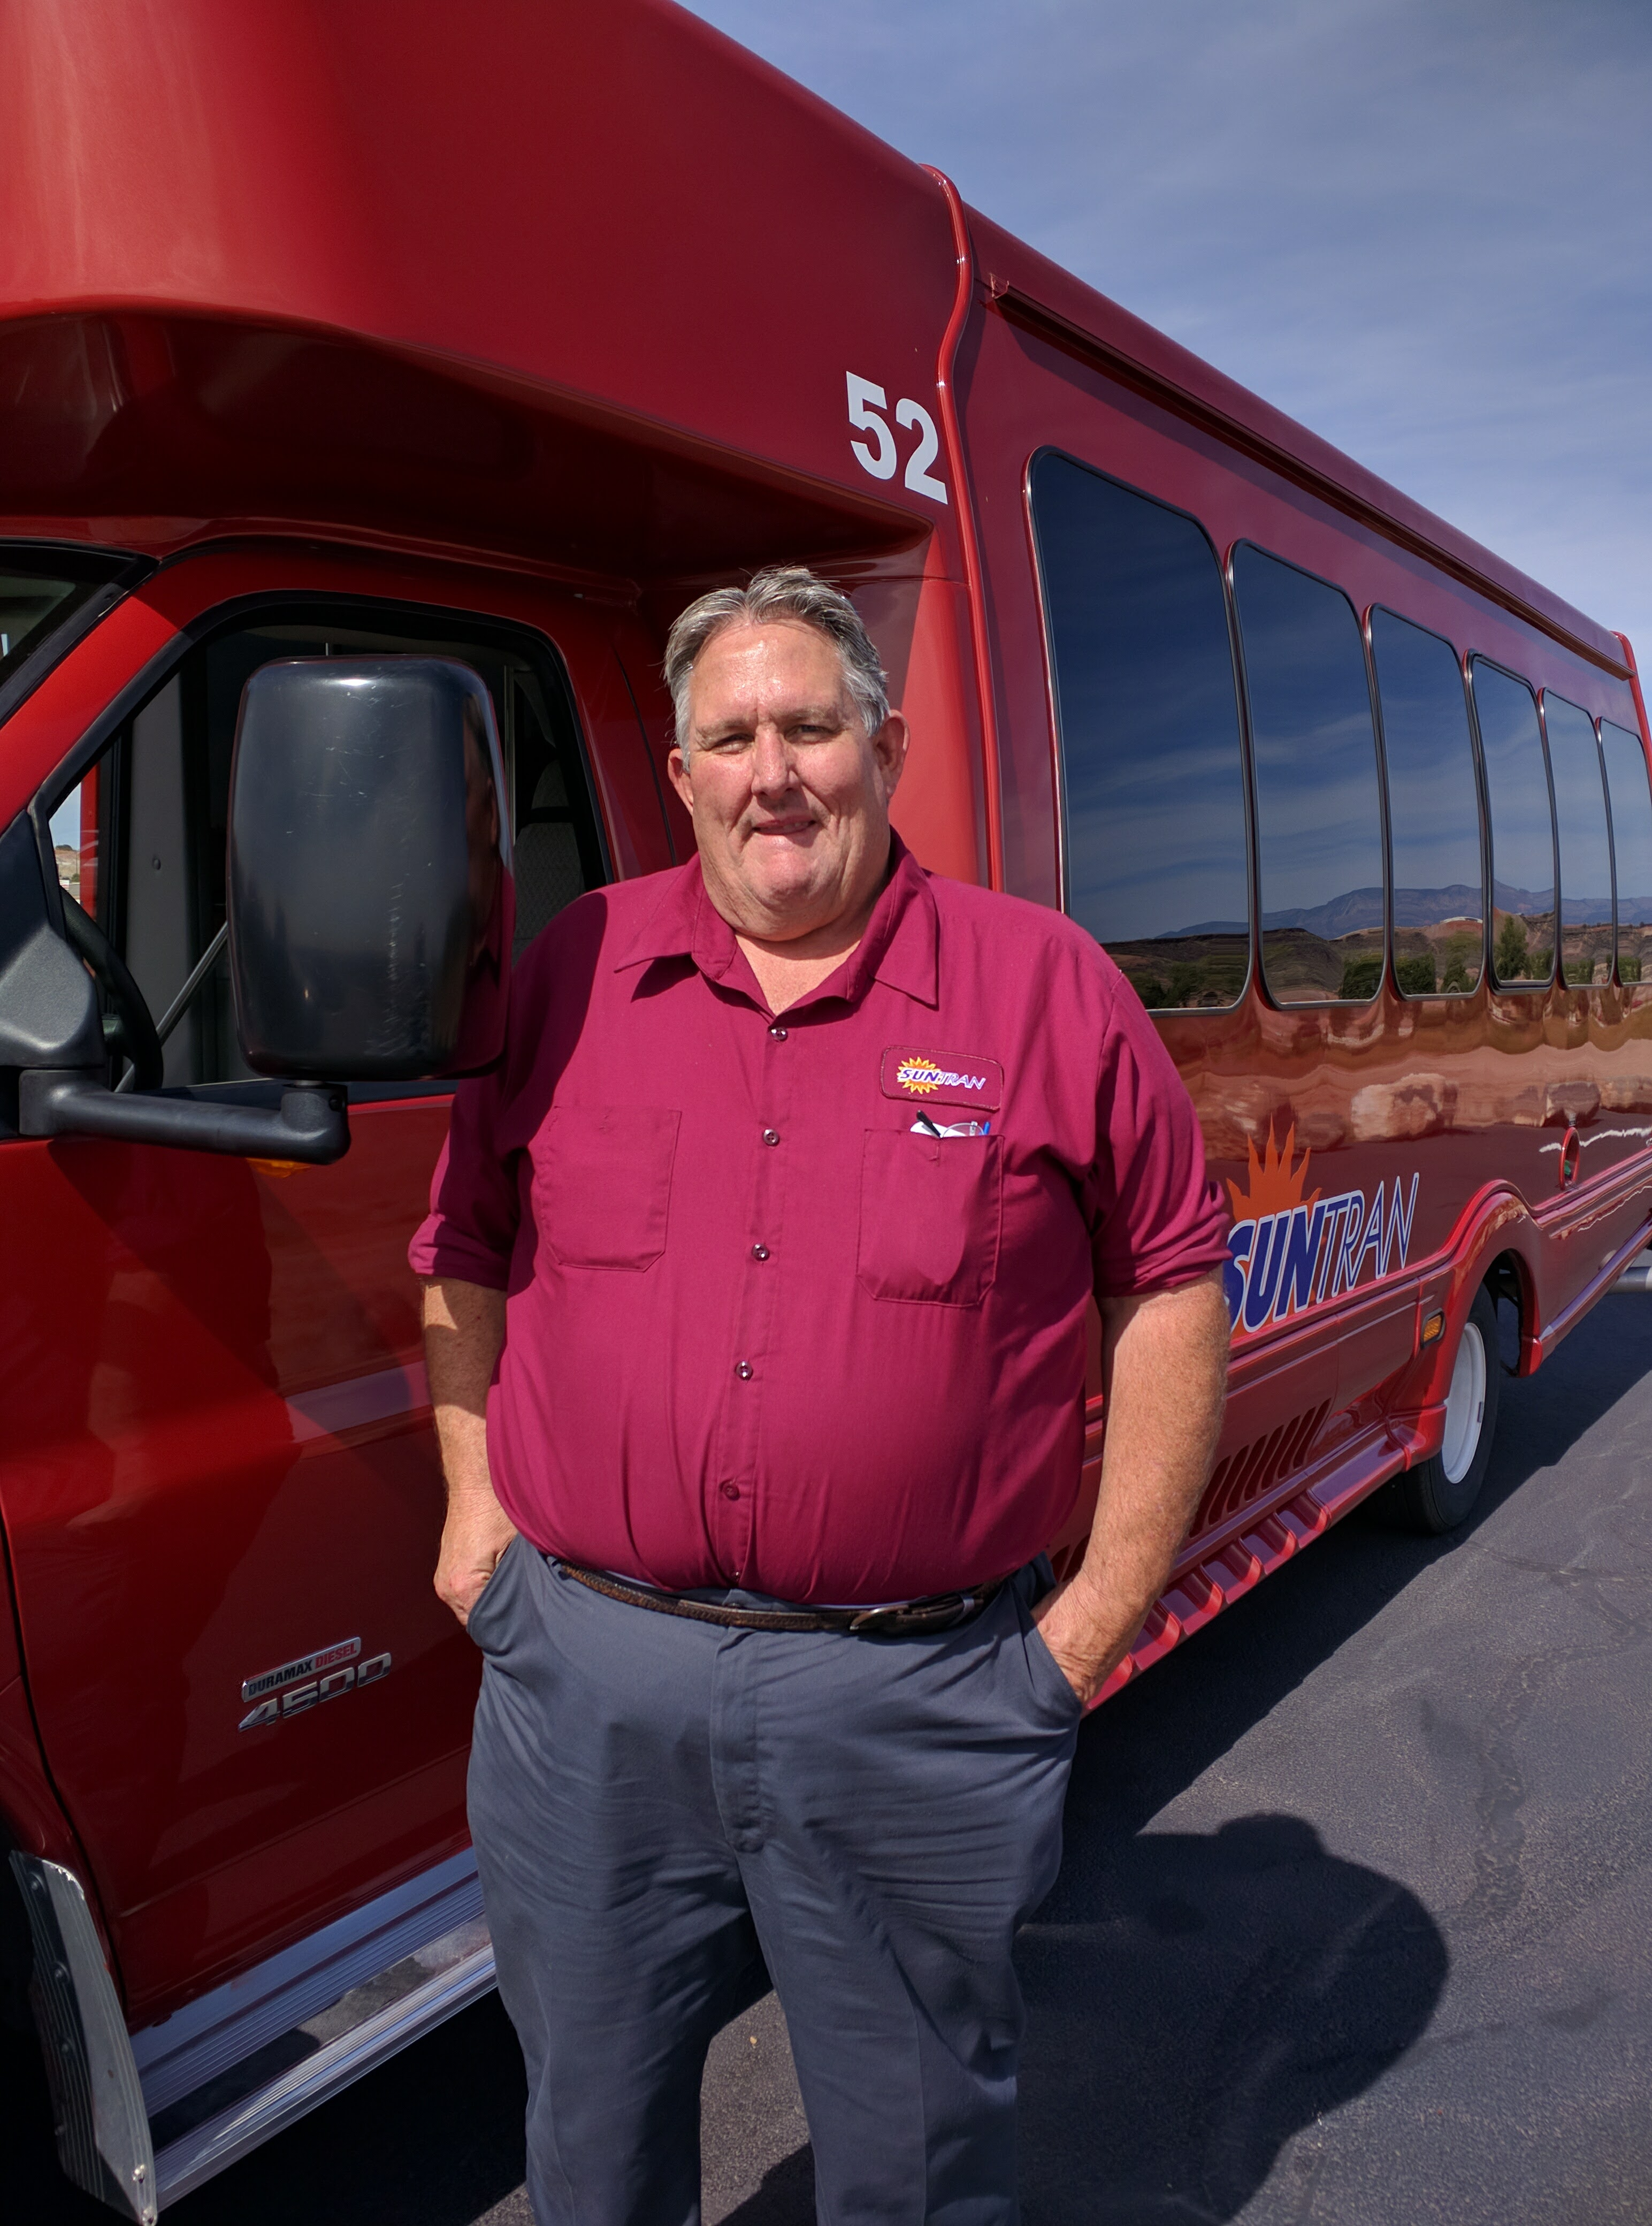 Rick Nelson, a bus driver for Sun Tran, seeks election to the local school board, St. George, Utah, Oct. 8, 2016 | Photo by Joseph Witham, St. George News